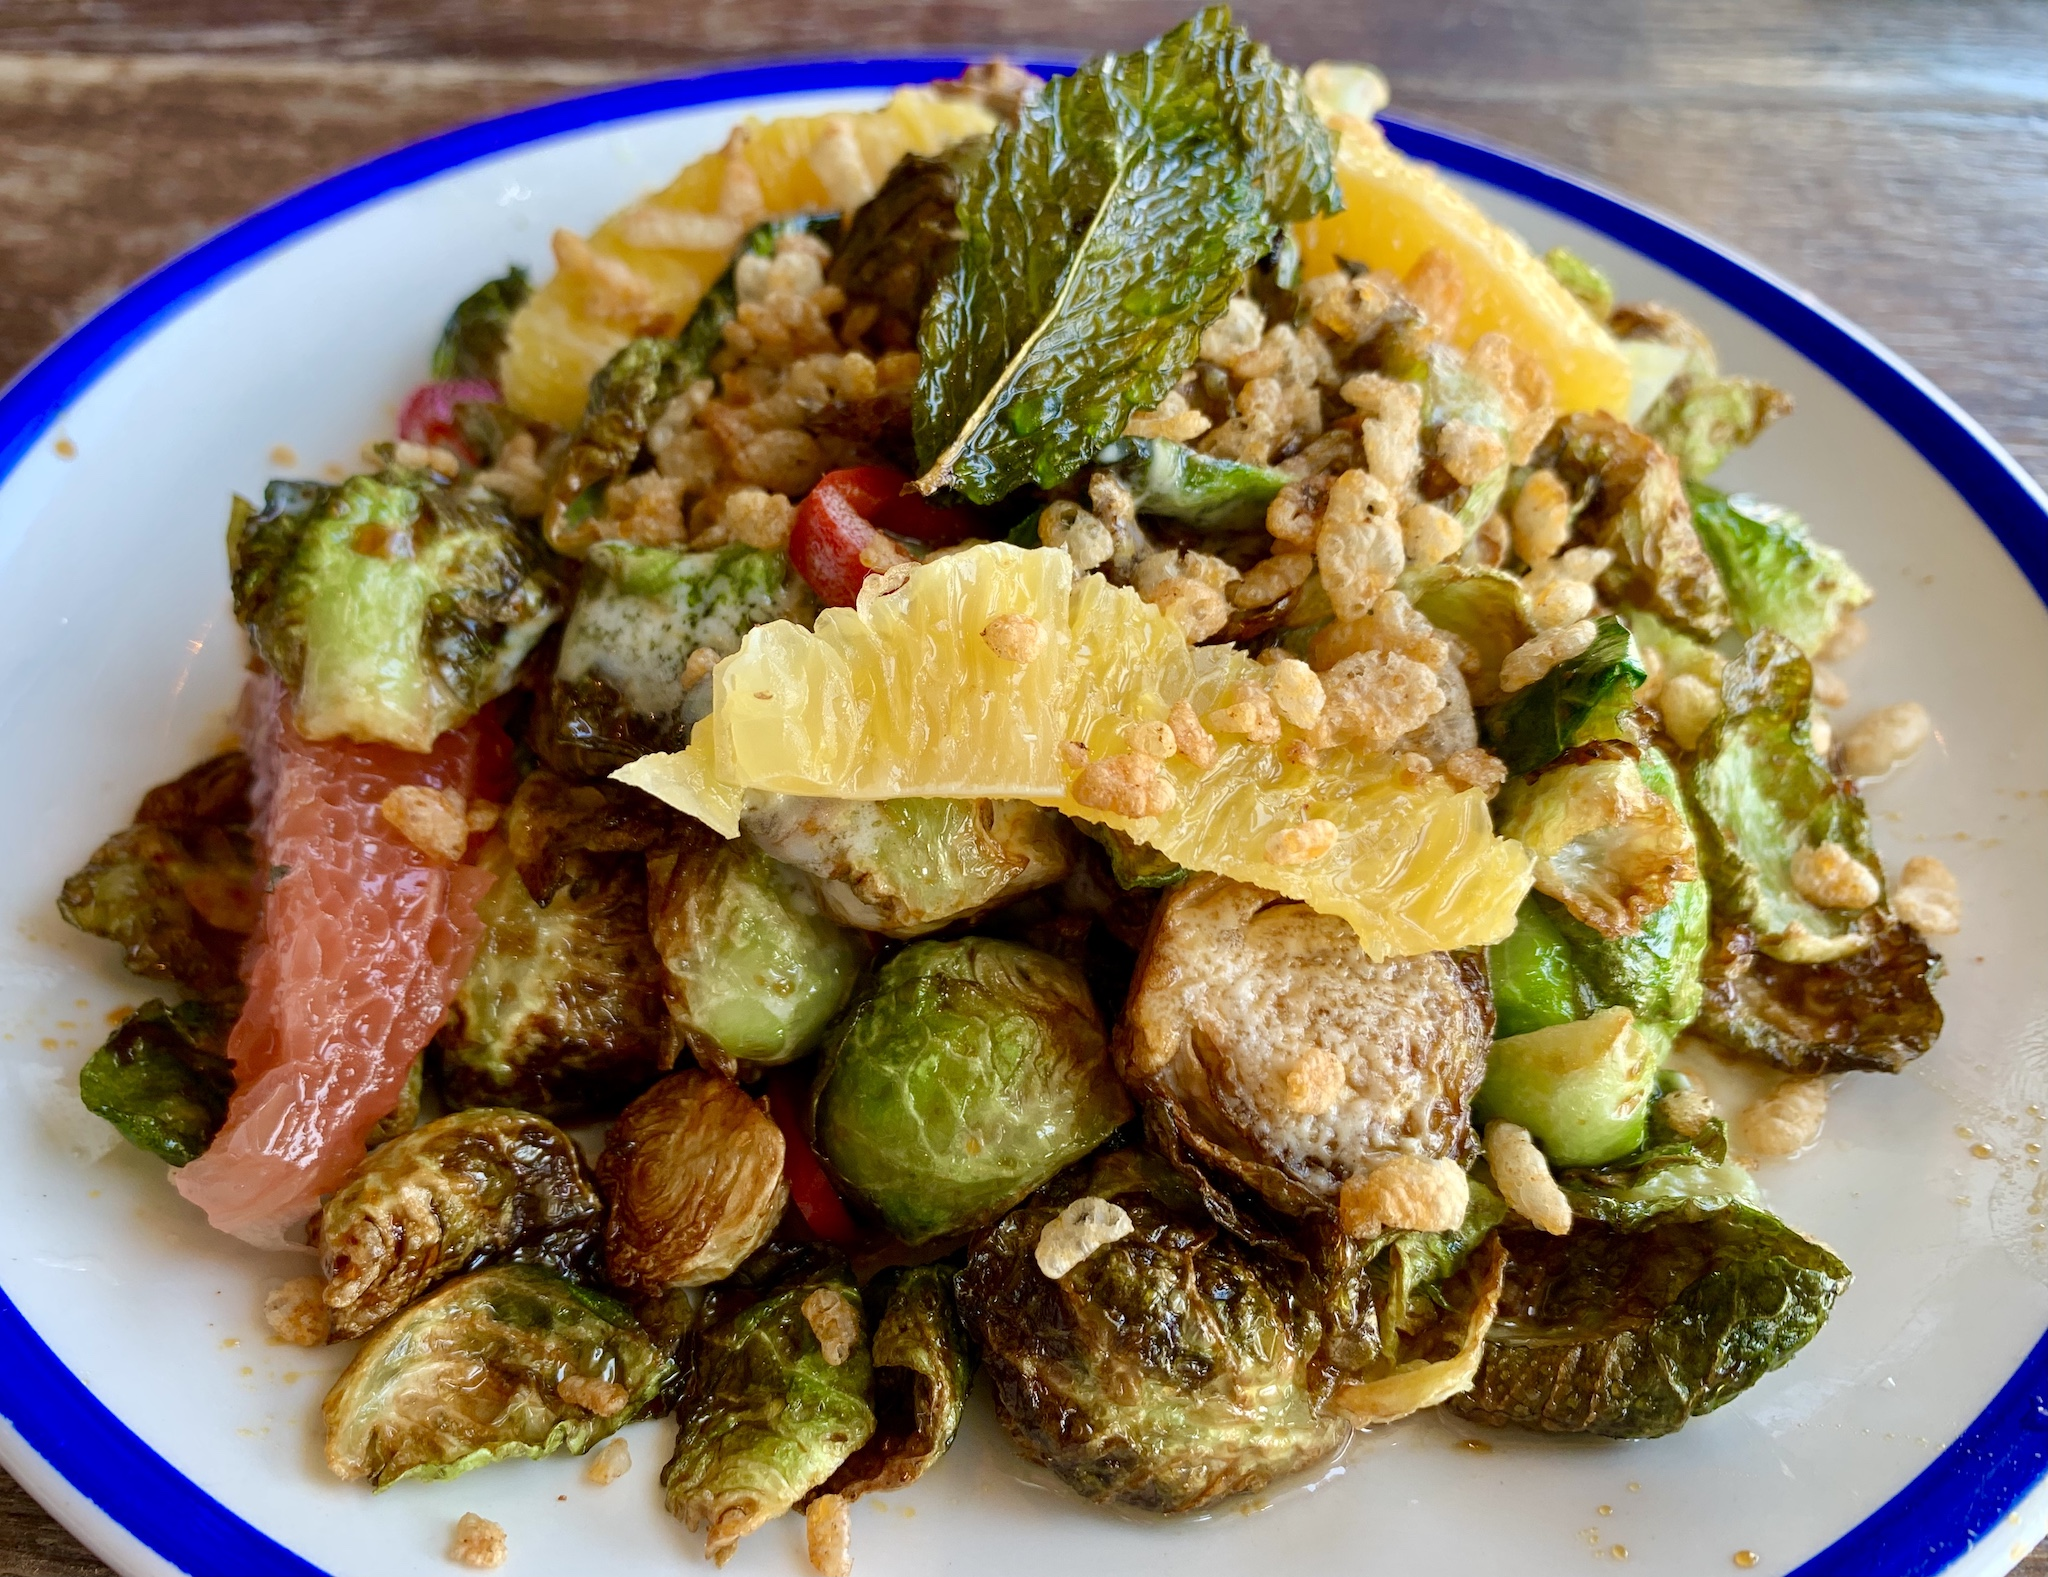 Noble Crust - Crispy Brussel Sprouts